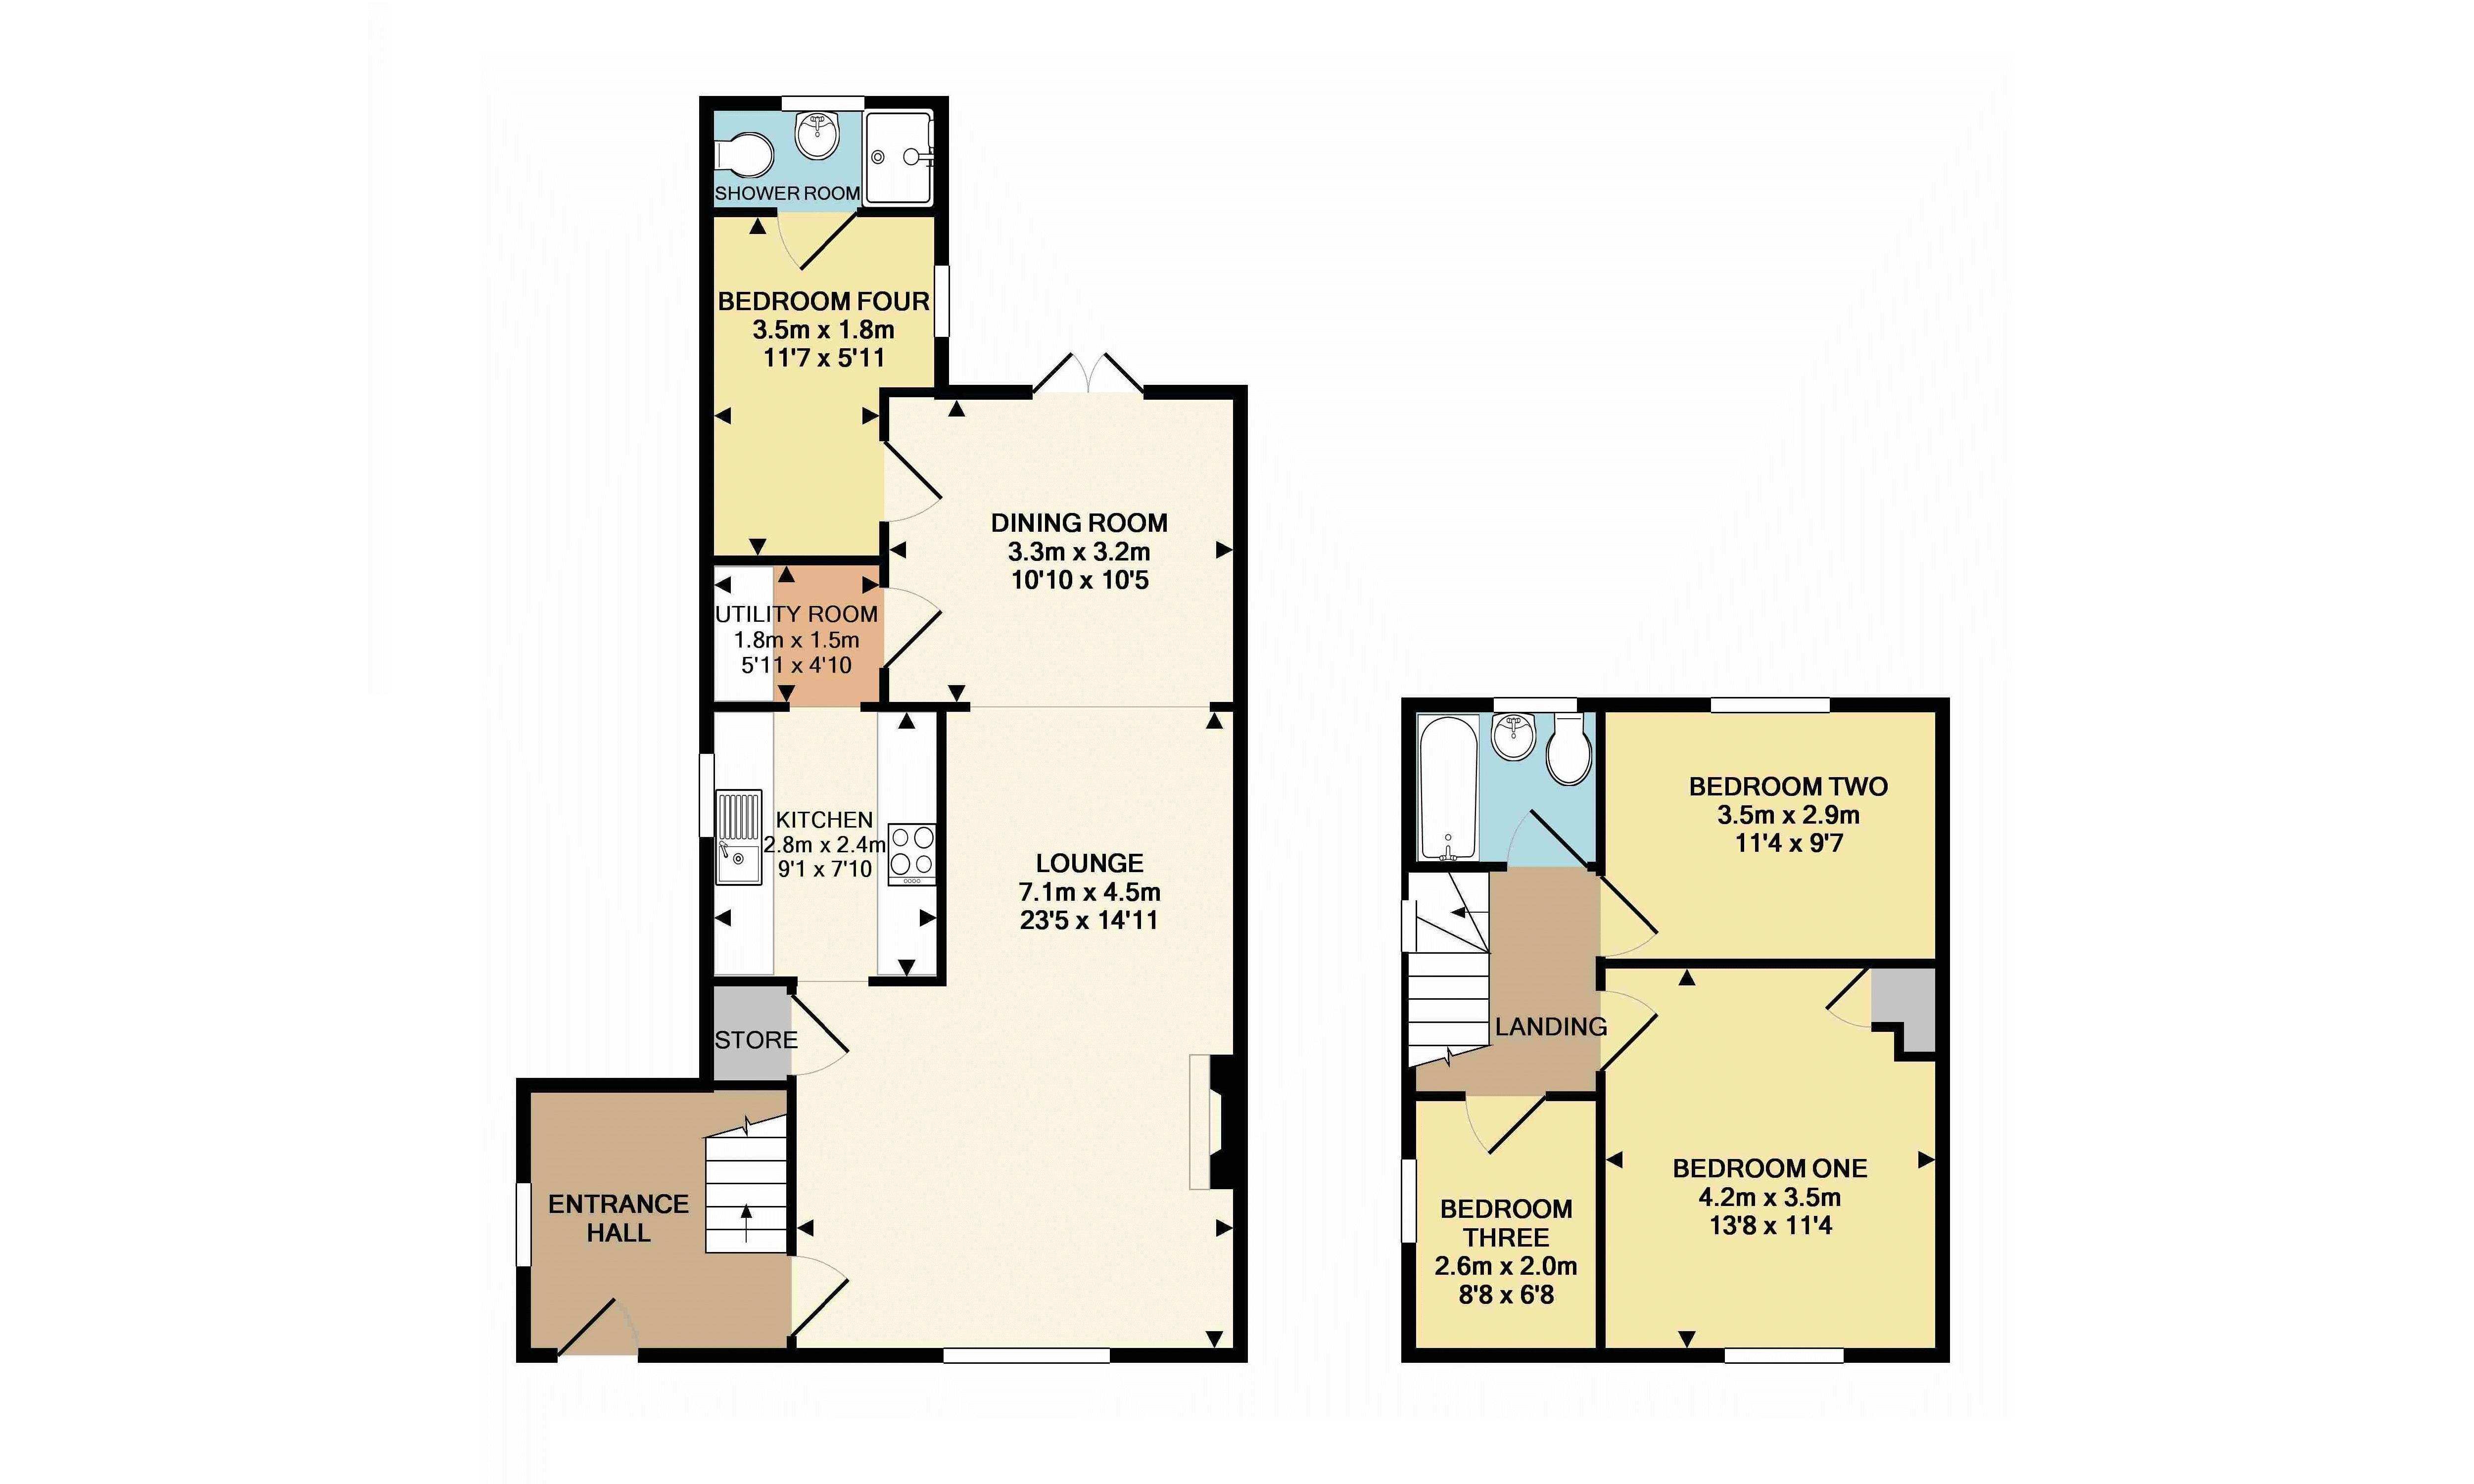 4 bedroom house for rent in dunstable for How much is a bathroom worth on an appraisal